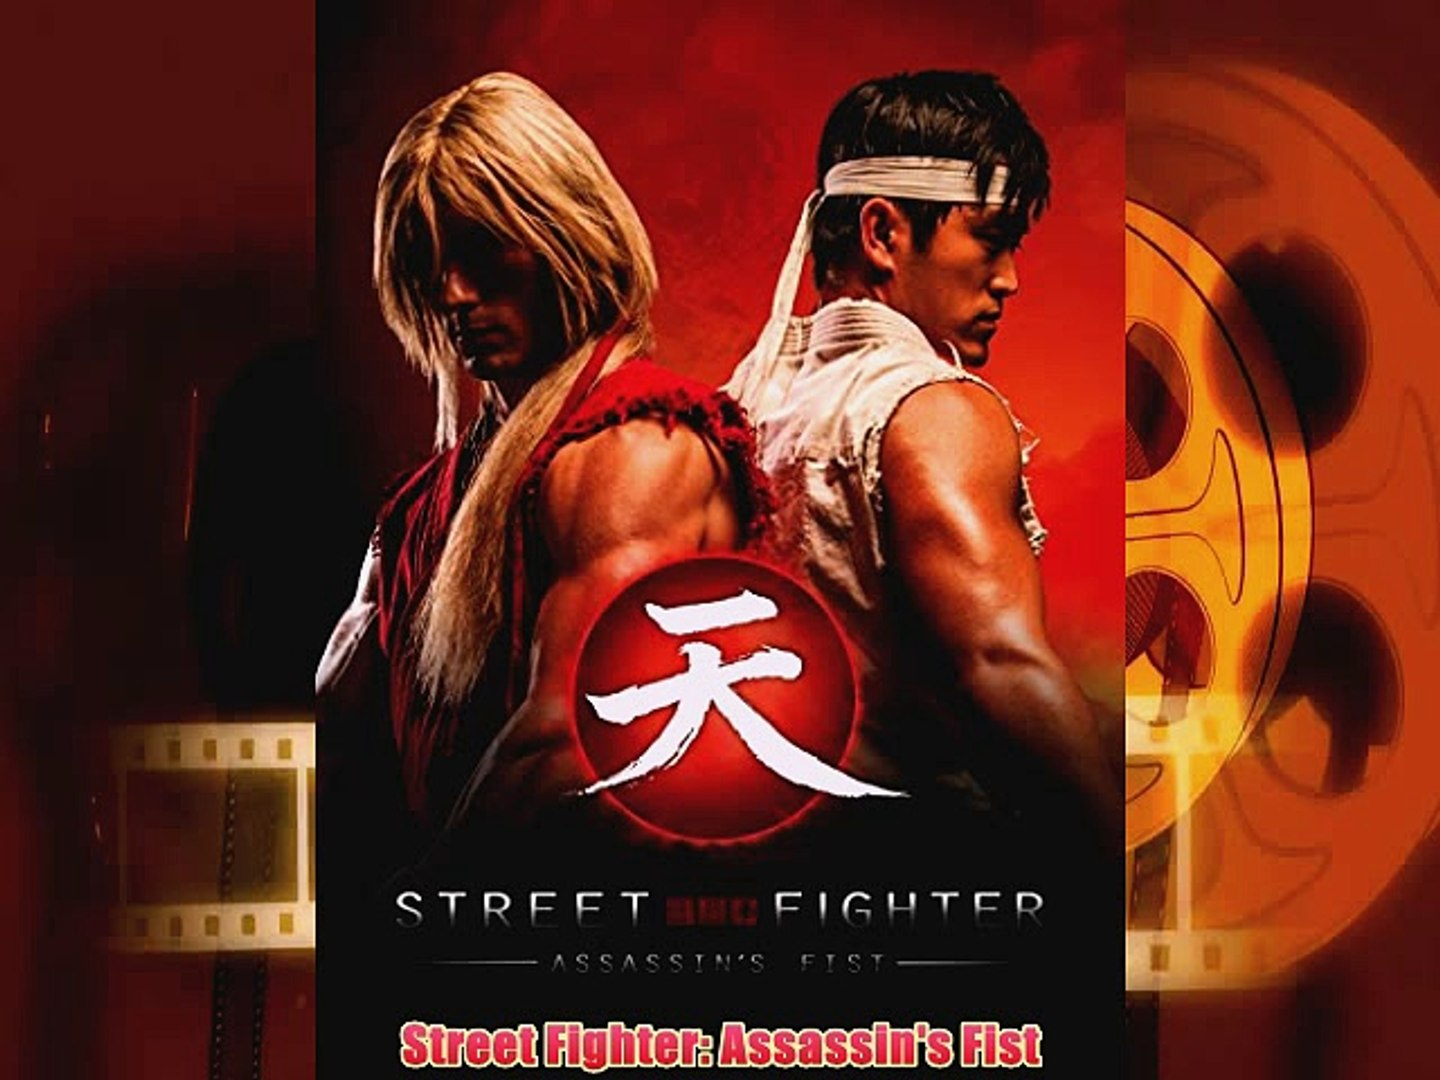 Download Street Fighter Assassin S Fist Full Hd Video Dailymotion